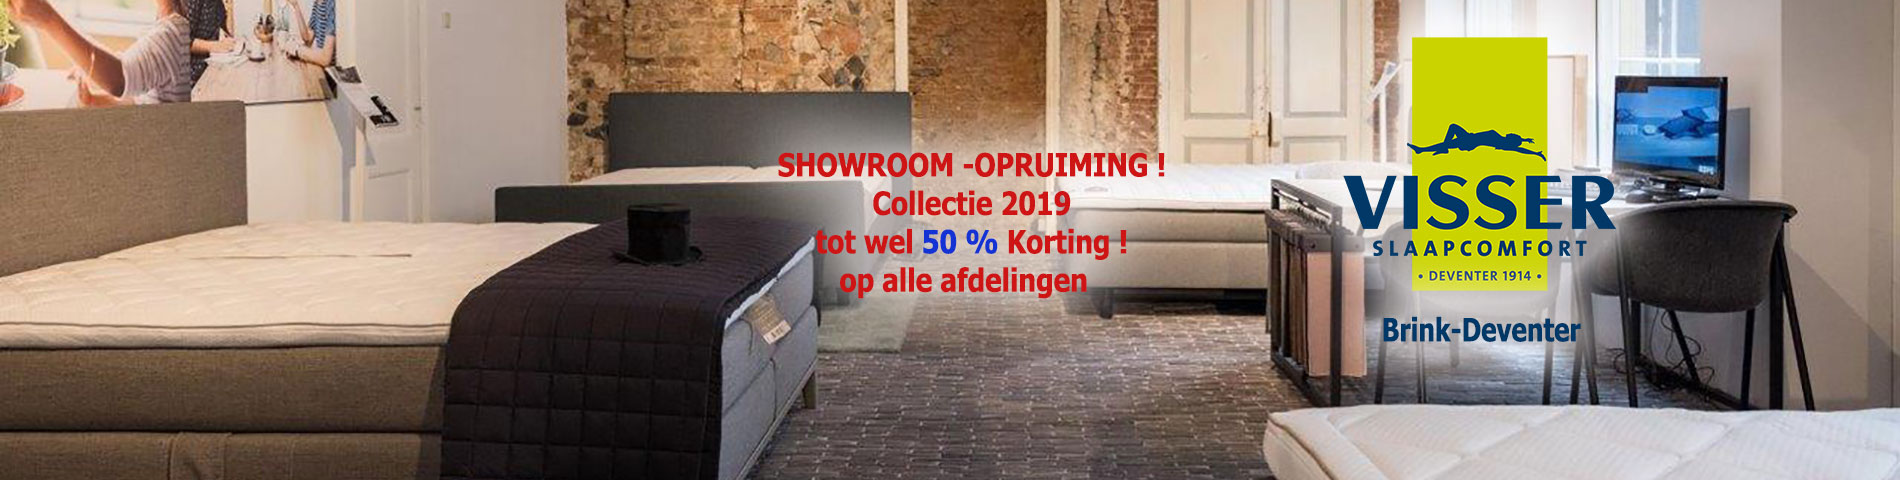 banner-showroom-opruiming